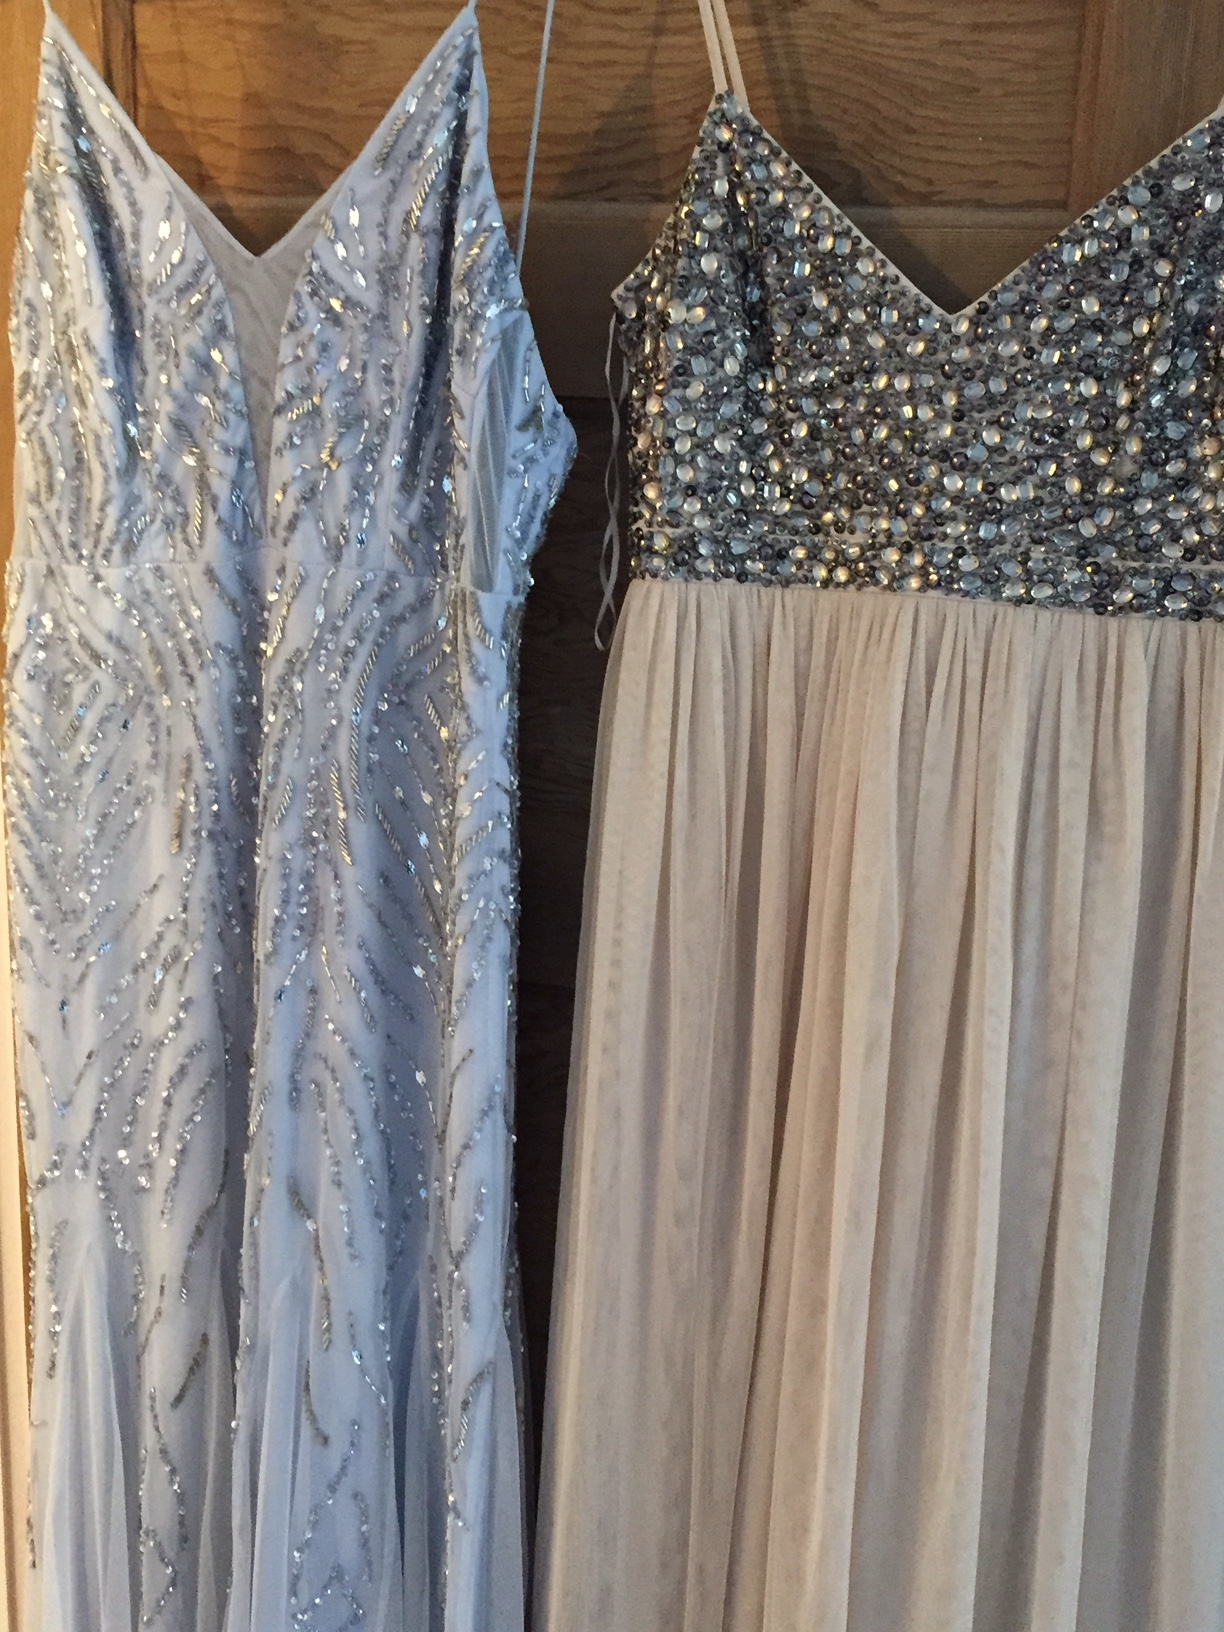 two donated prom dresses